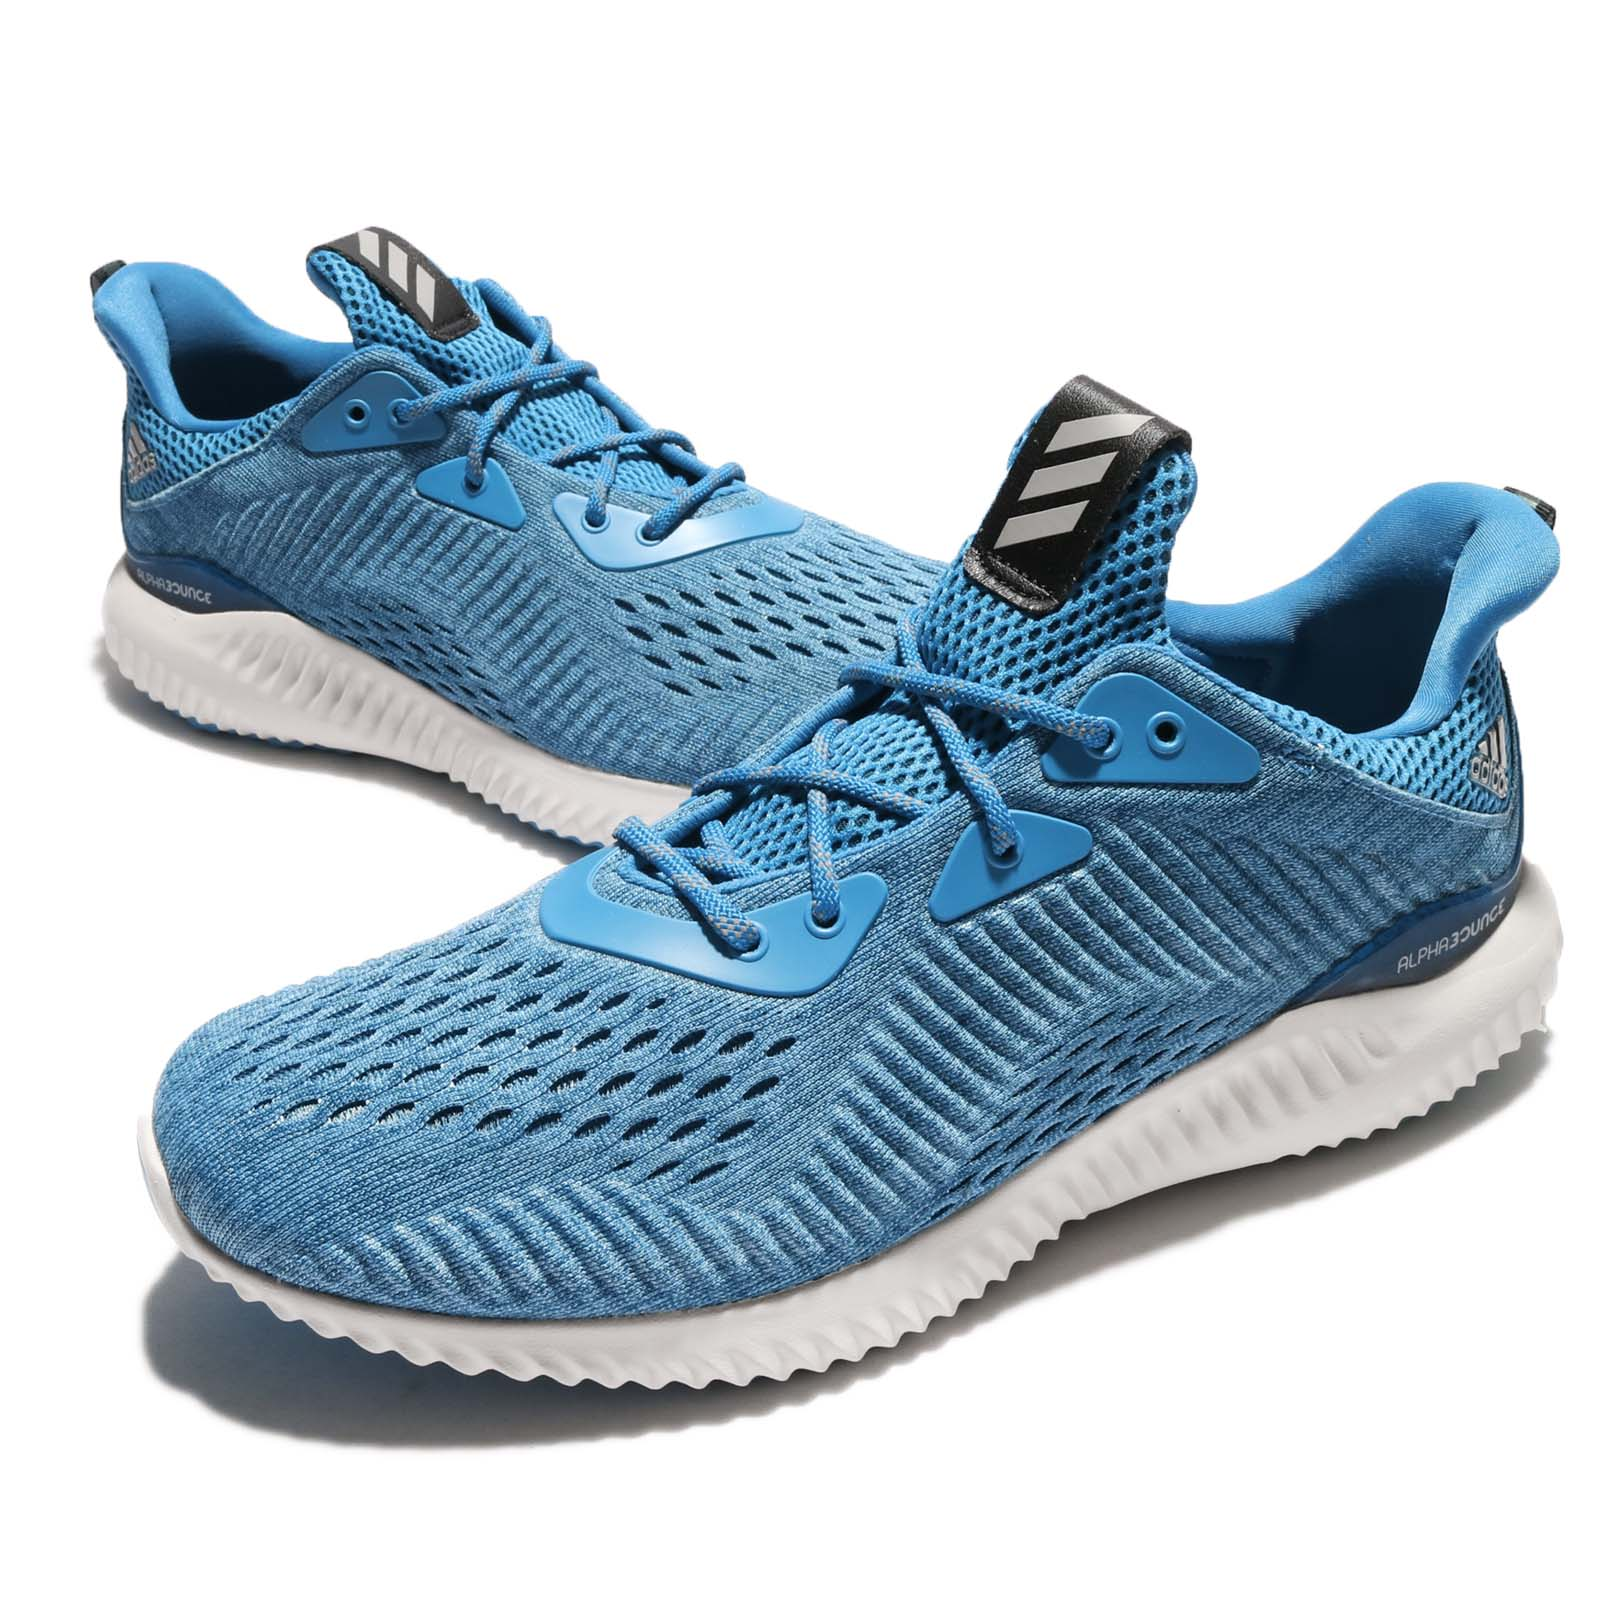 83dd3f3532e Adidas Alphabounce EM M Engineered Mesh Blue Men Running Shoes Trainers  BY3846 EBay